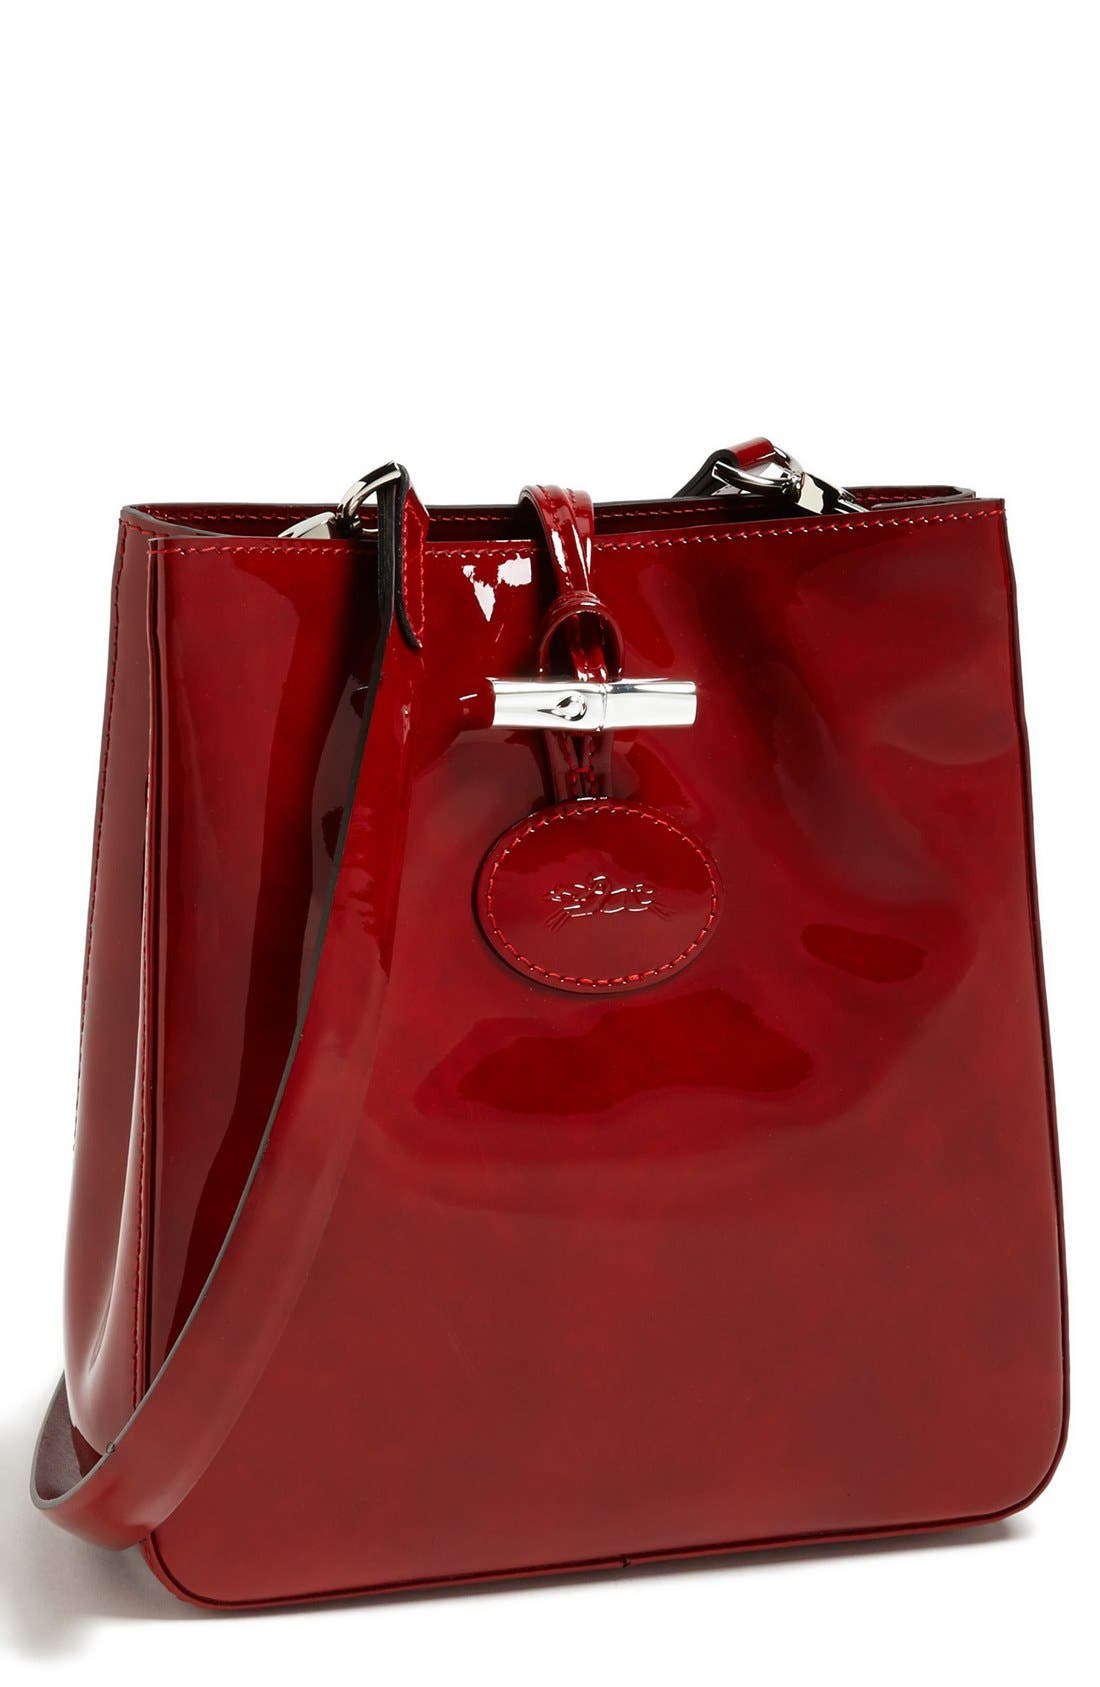 Main Image - Longchamp 'Roseau Box' Crossbody Bag